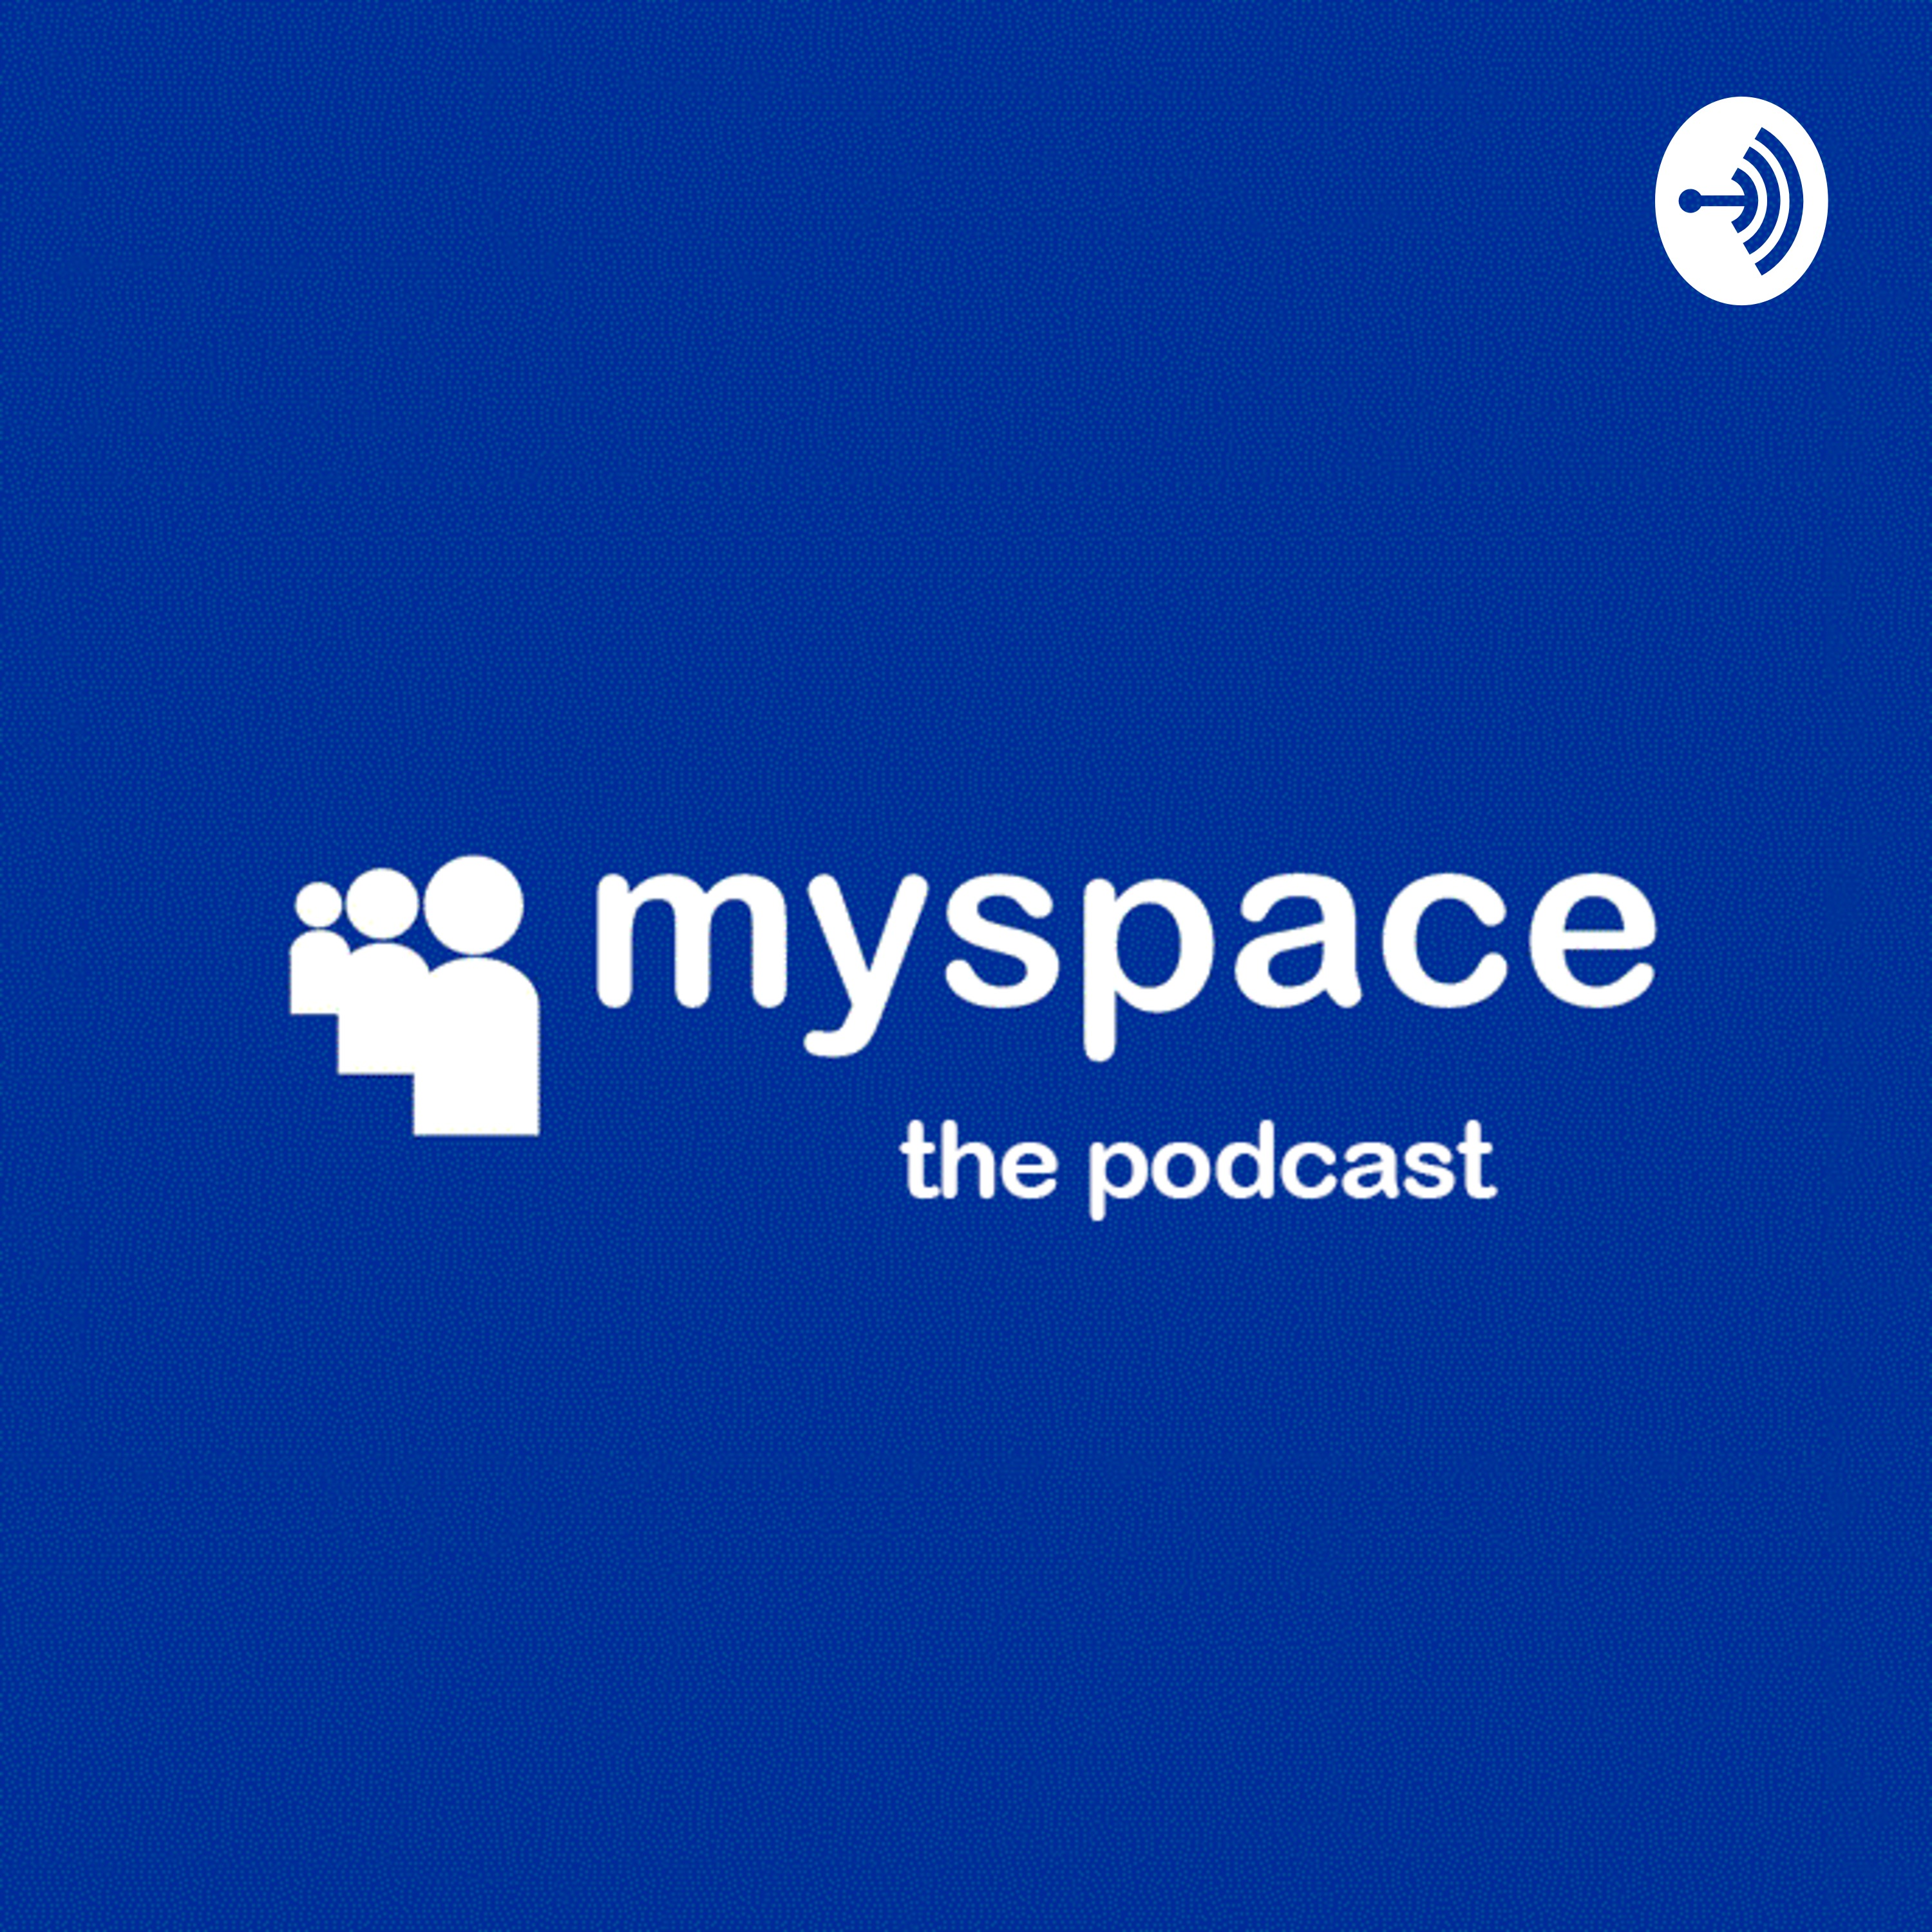 Myspace the podcast • a podcast on anchor